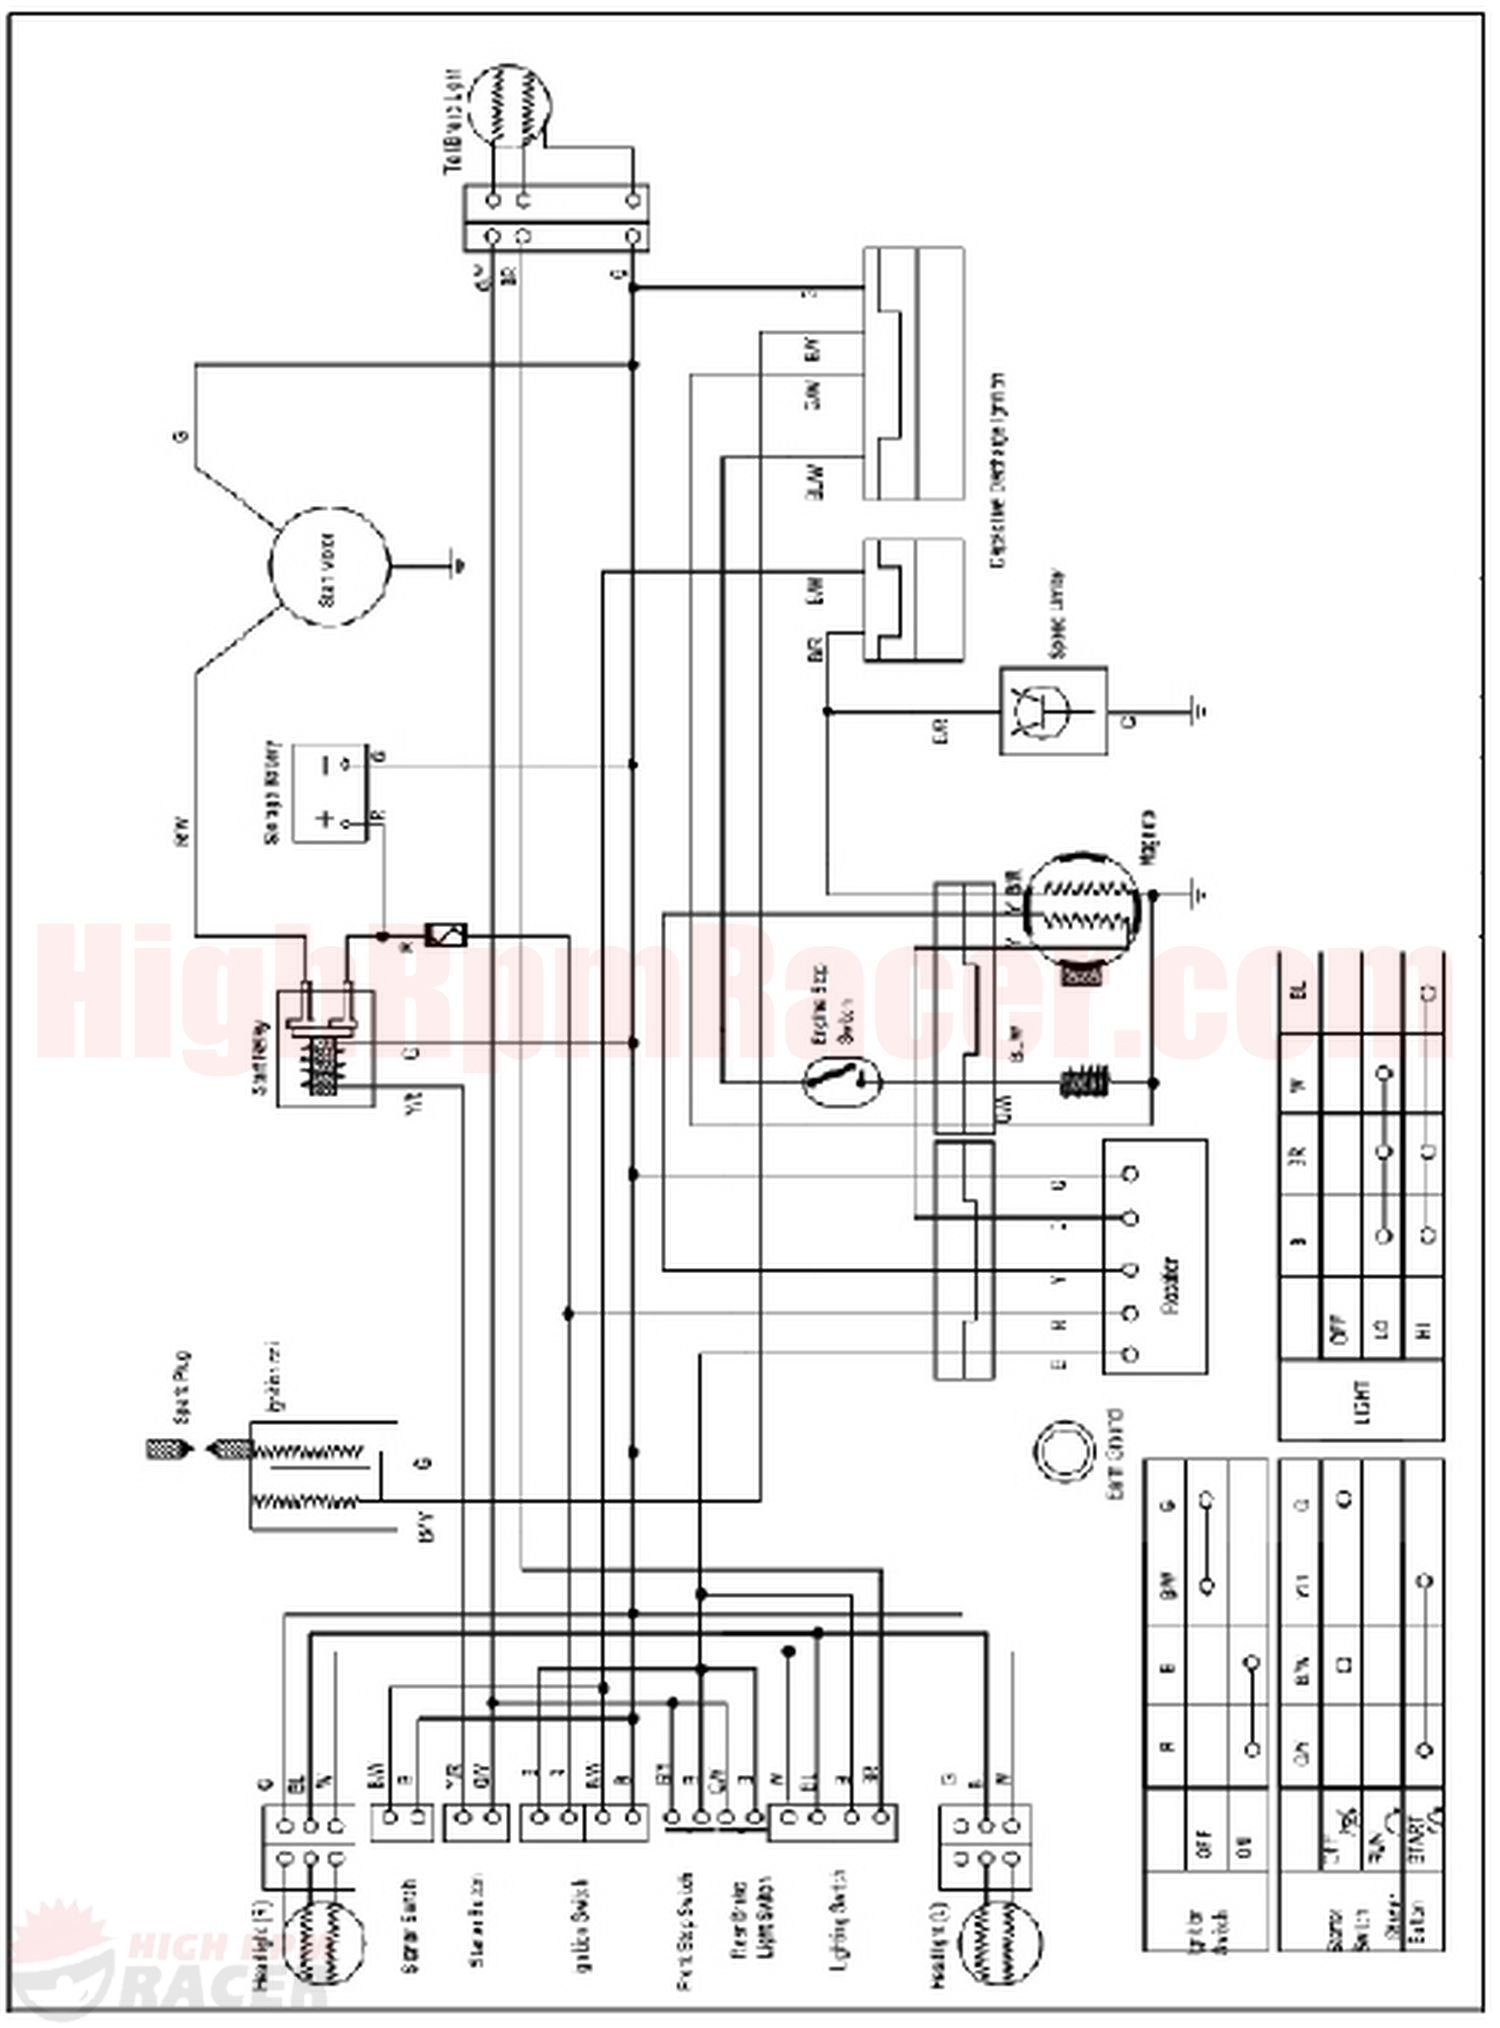 SunL ATV 250 Wiring Diagram (With images) Electrical